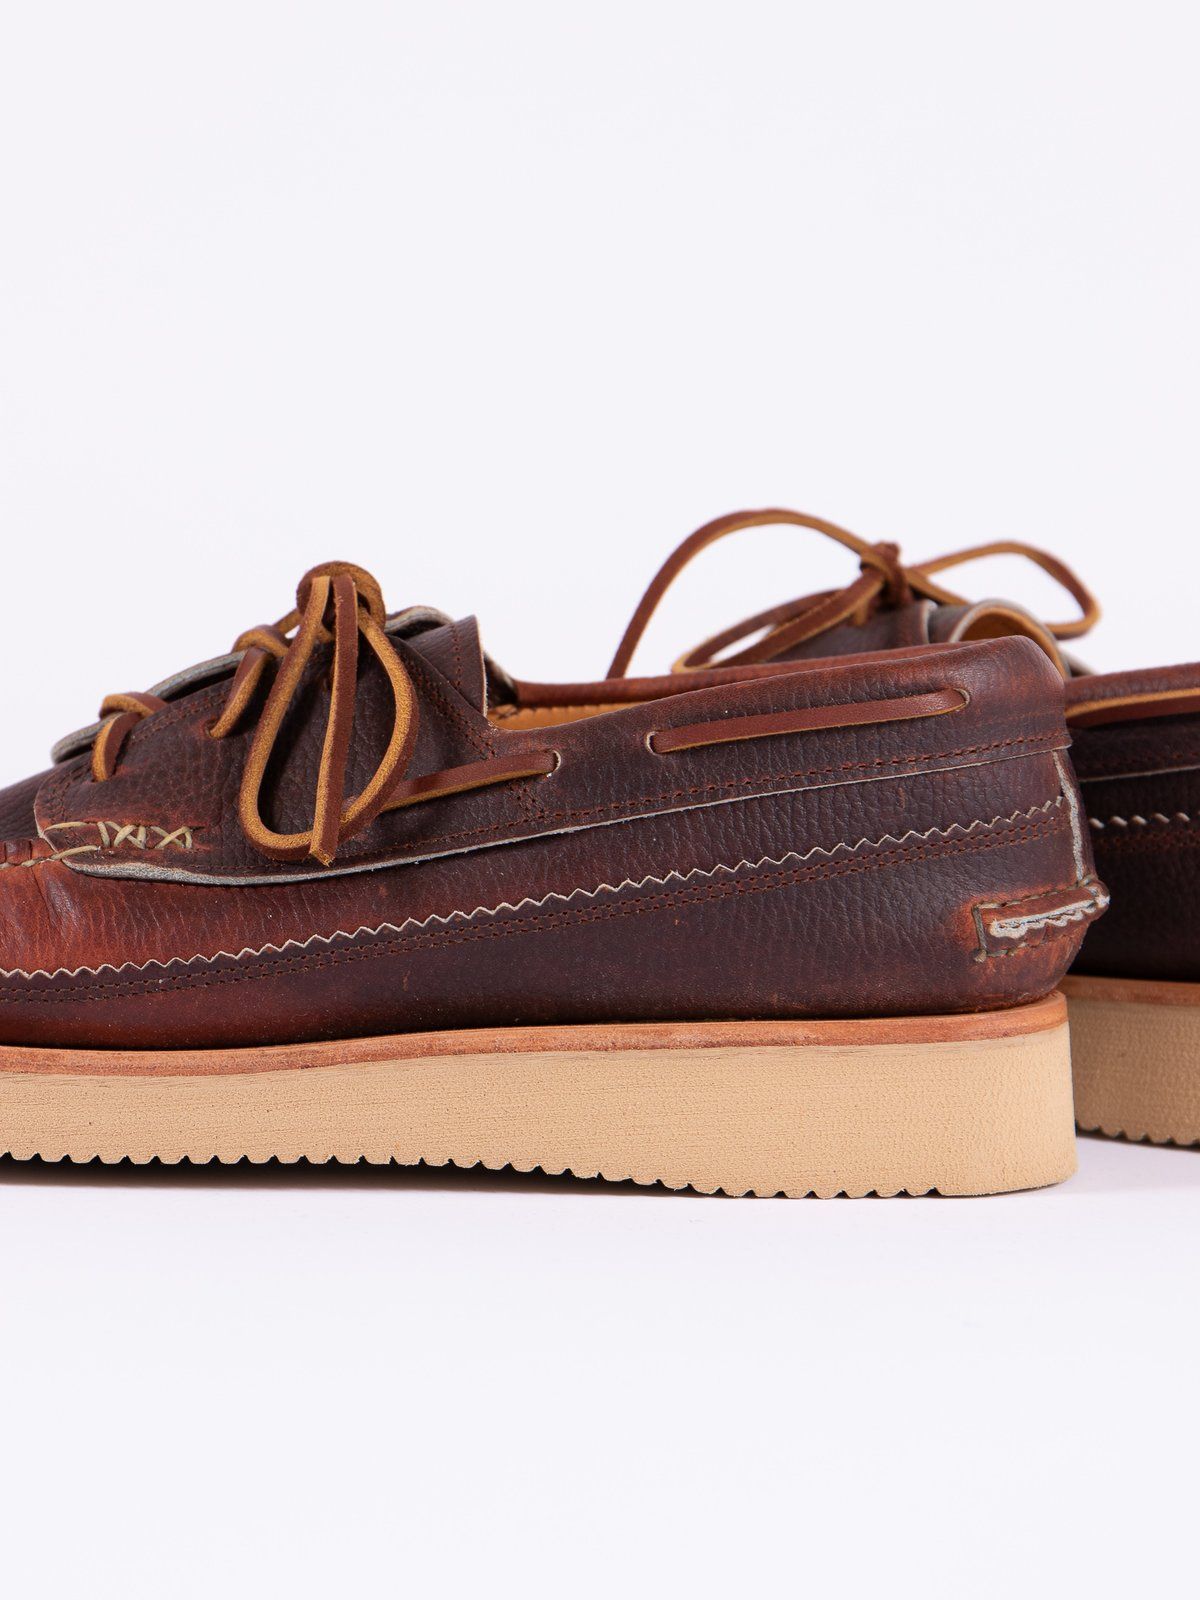 Chromepak Brown Boat Shoe Exclusive - Image 4